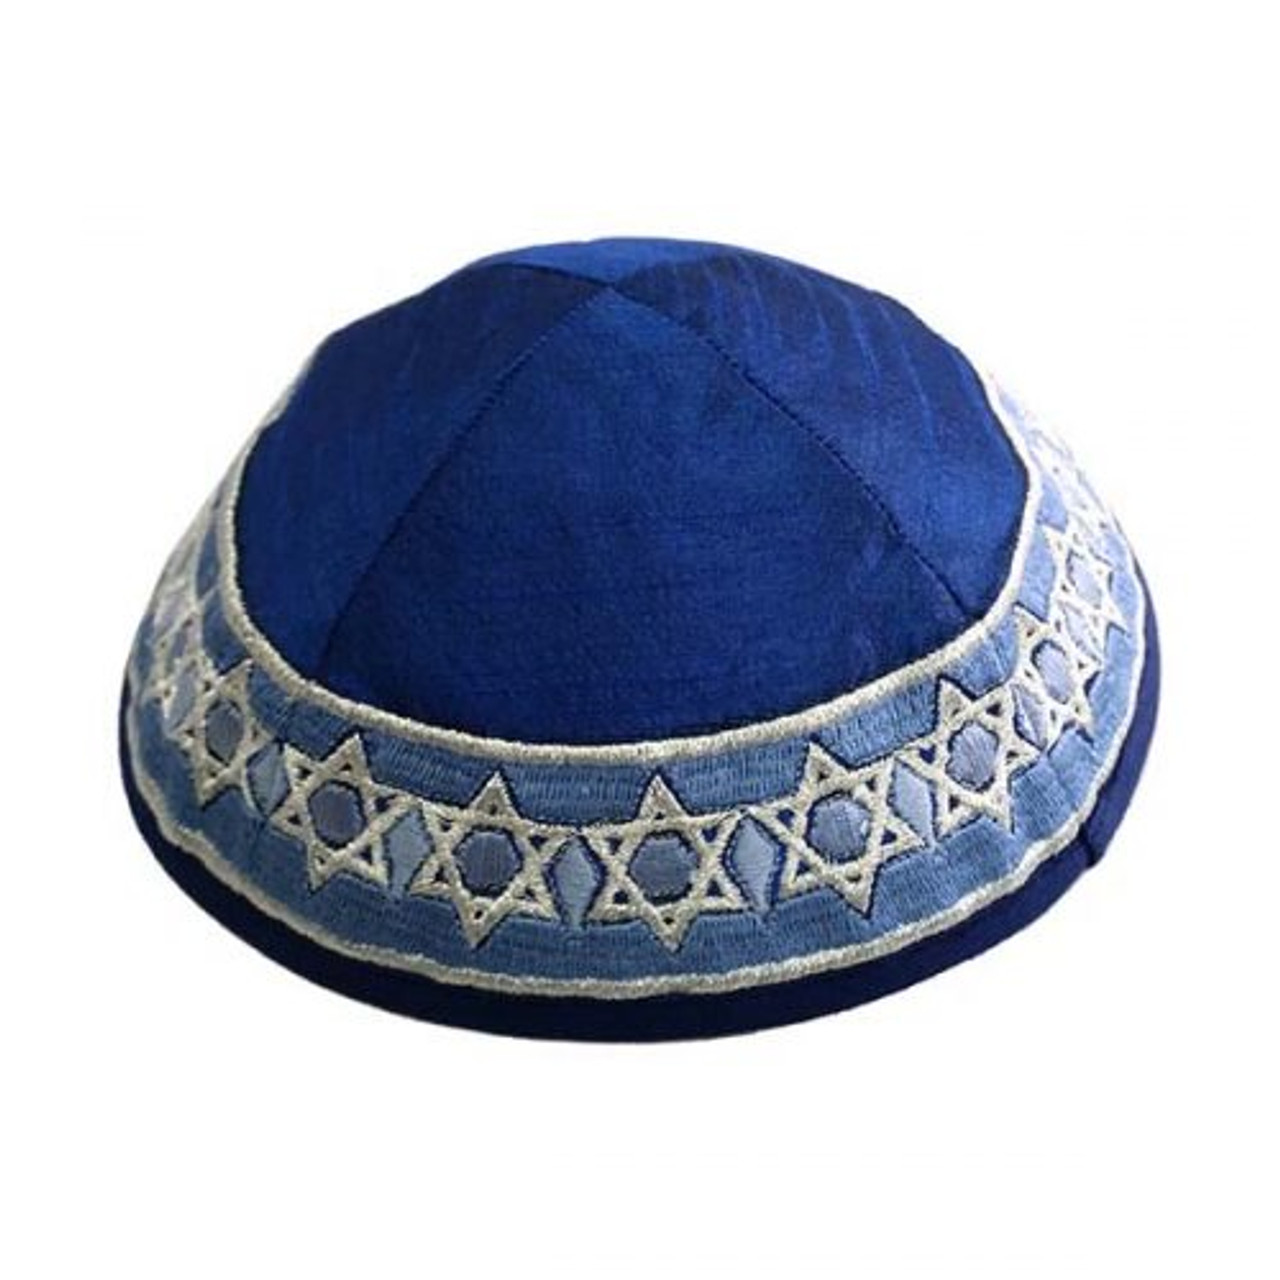 Blue Magen David Embroidered Kippah